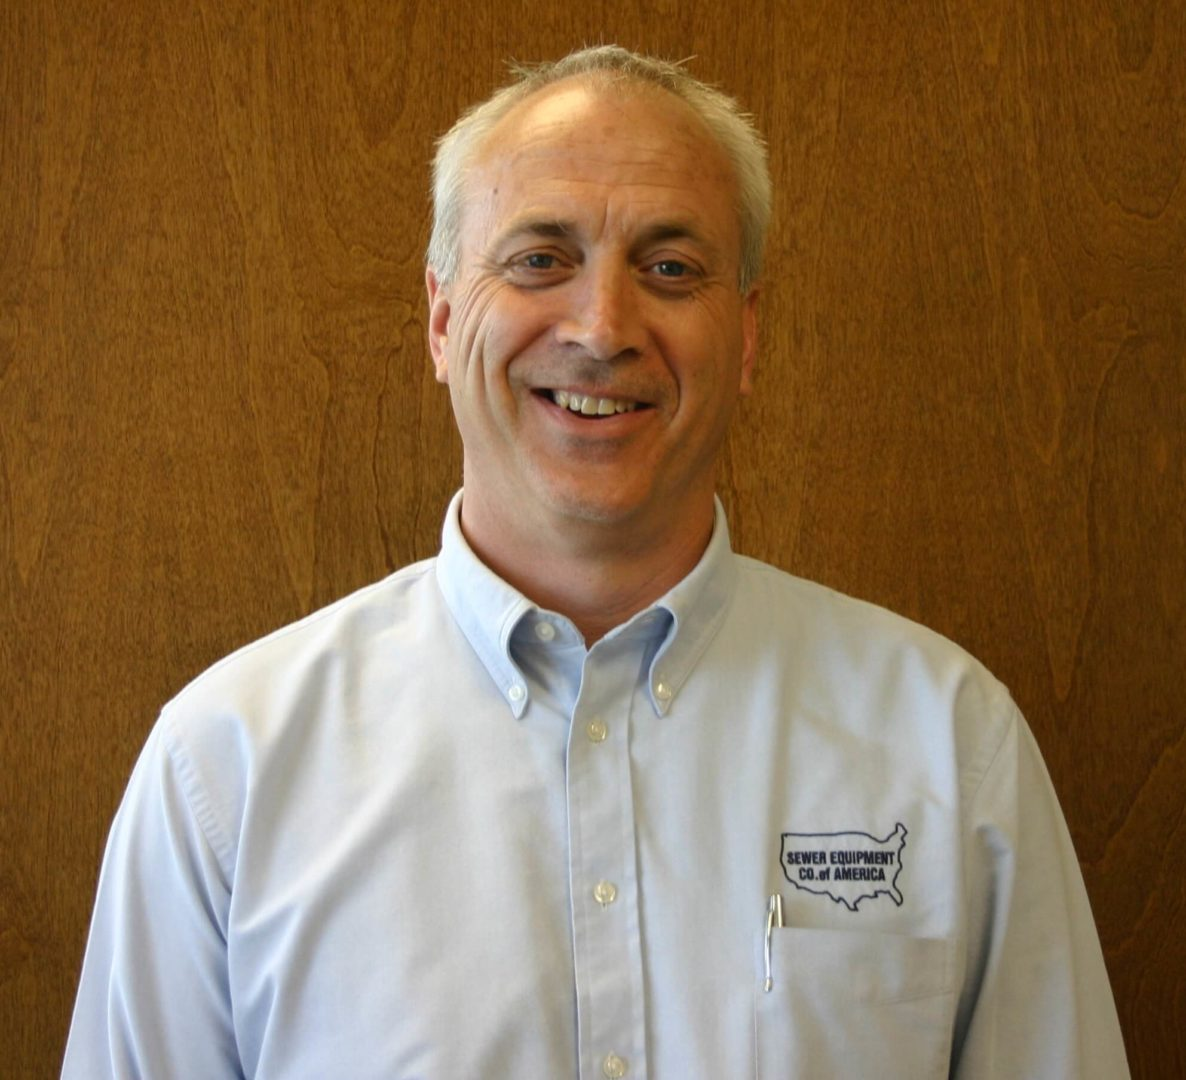 John Wichmann, President of Sewer Equipment